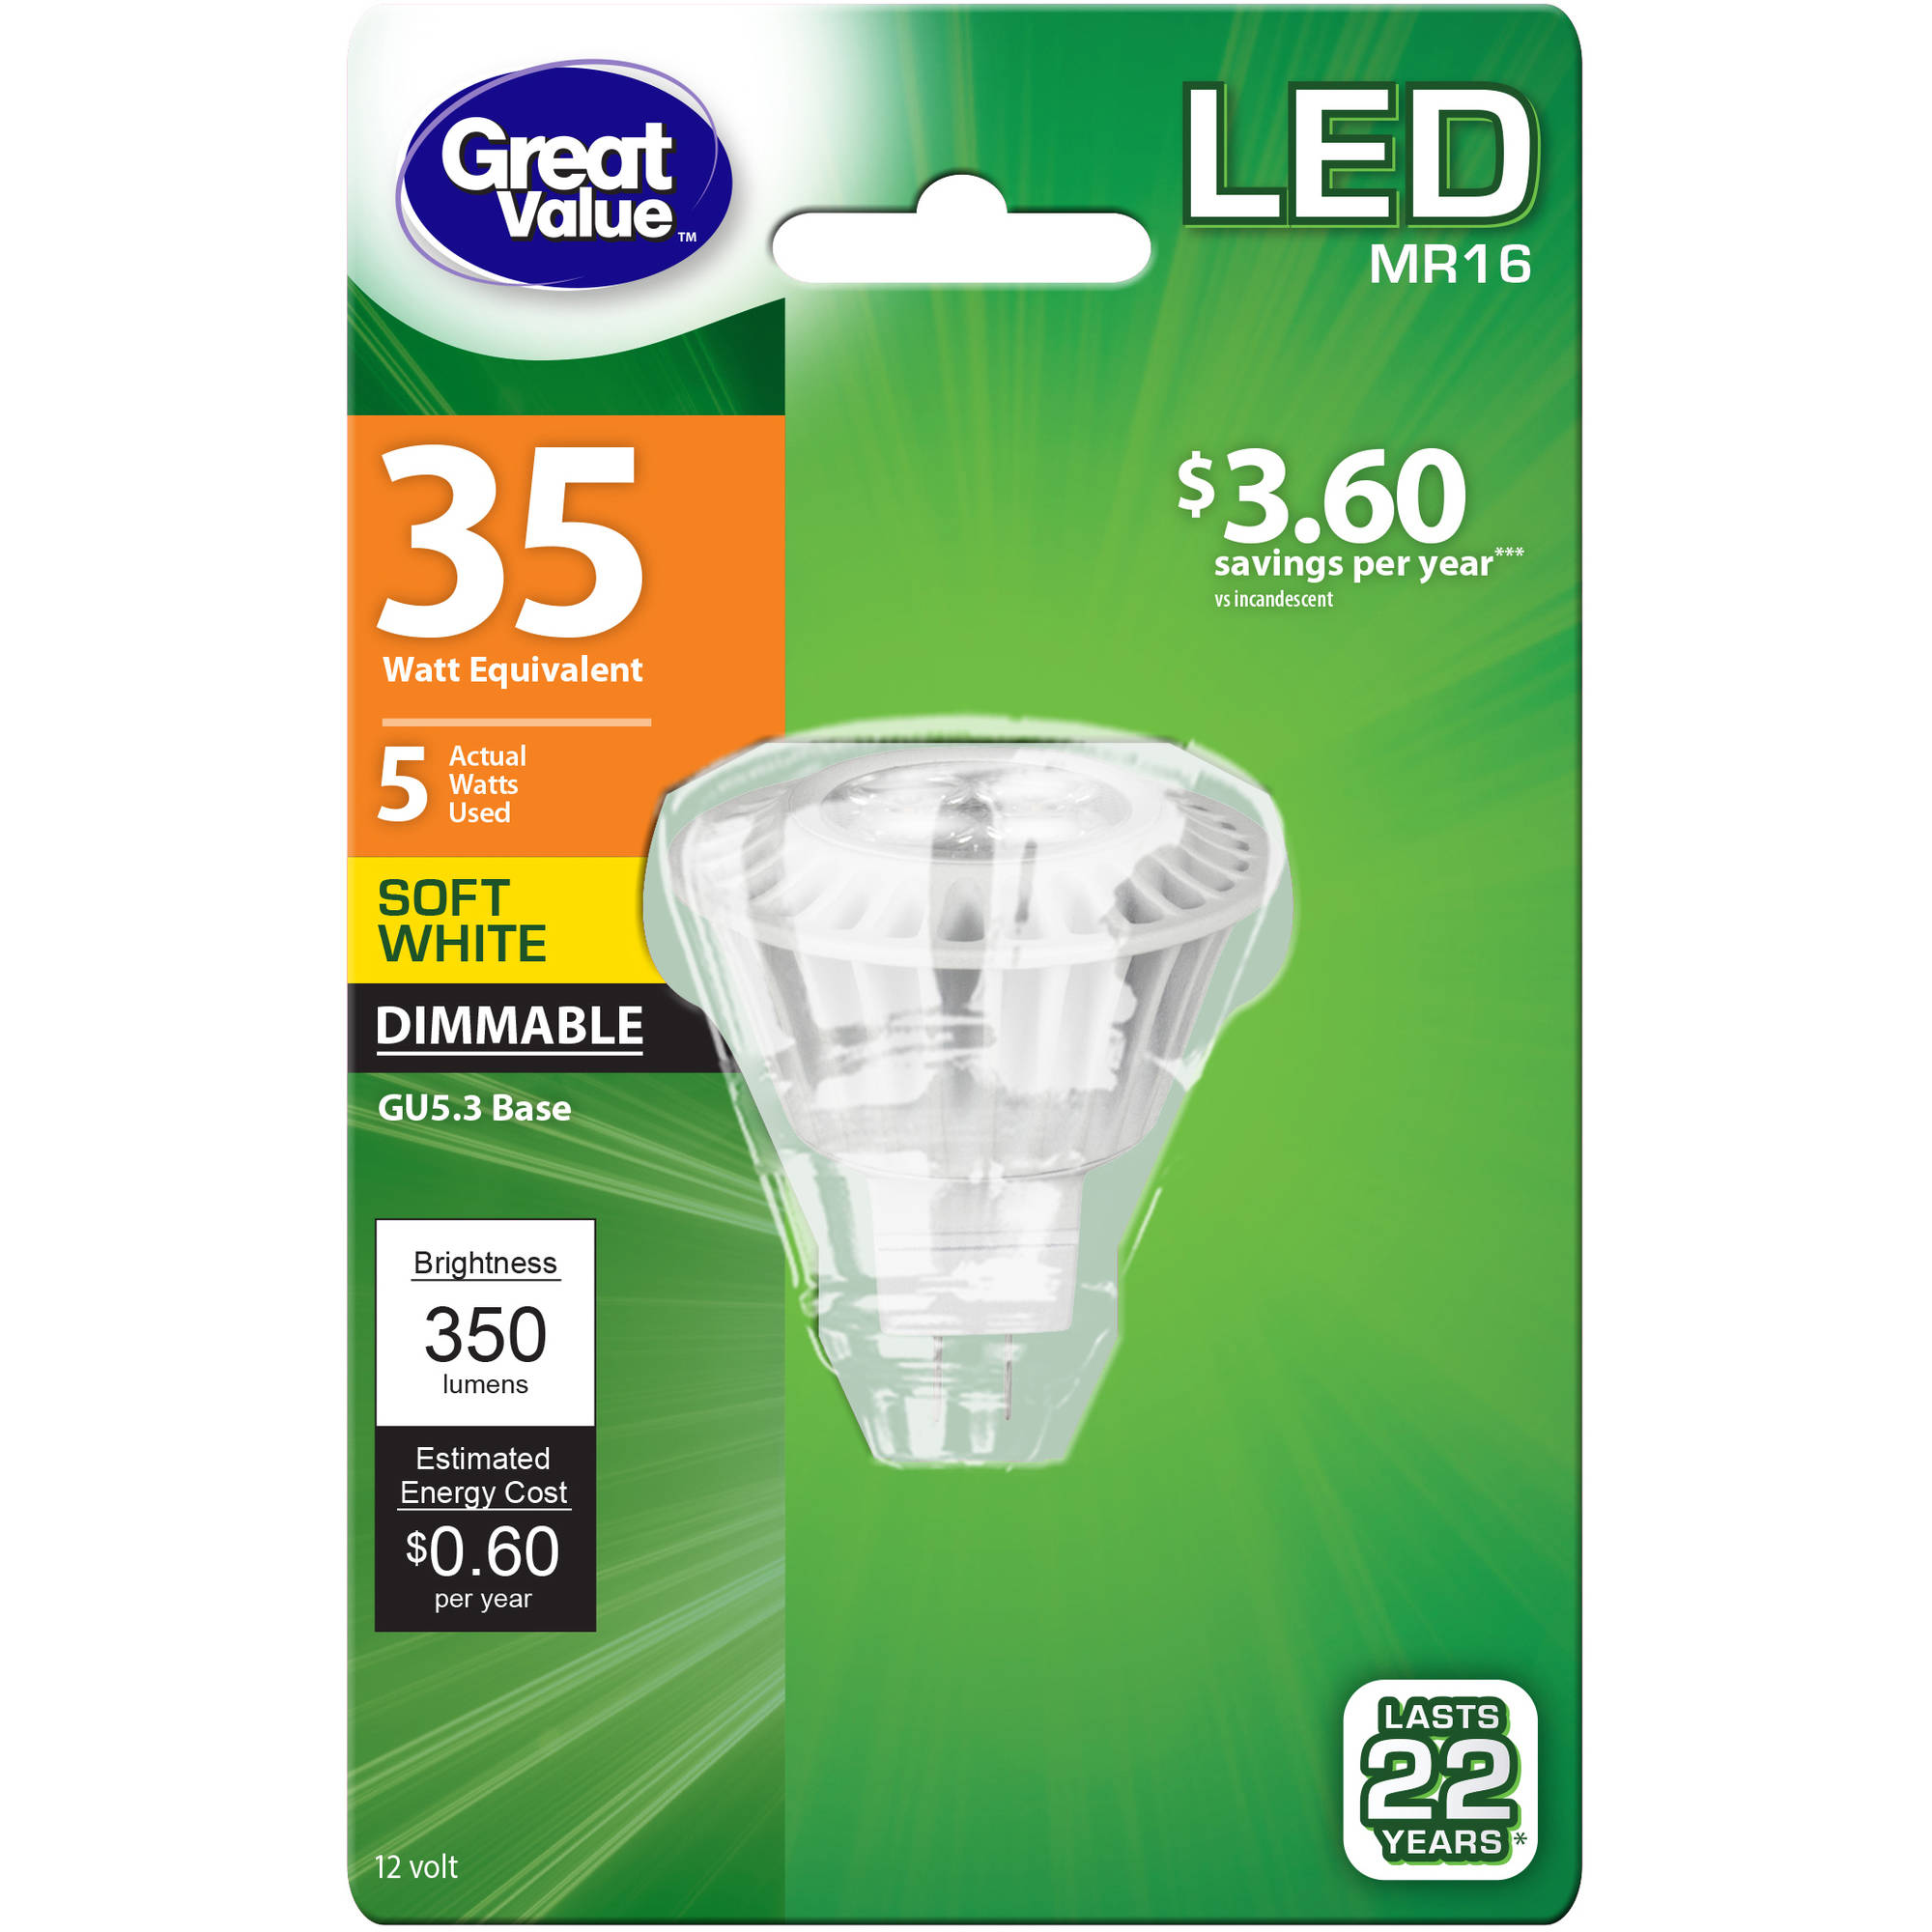 Great Value LED Light Bulb, 5W (35W Equivalent), Dimmable, Soft White, MR16,12V